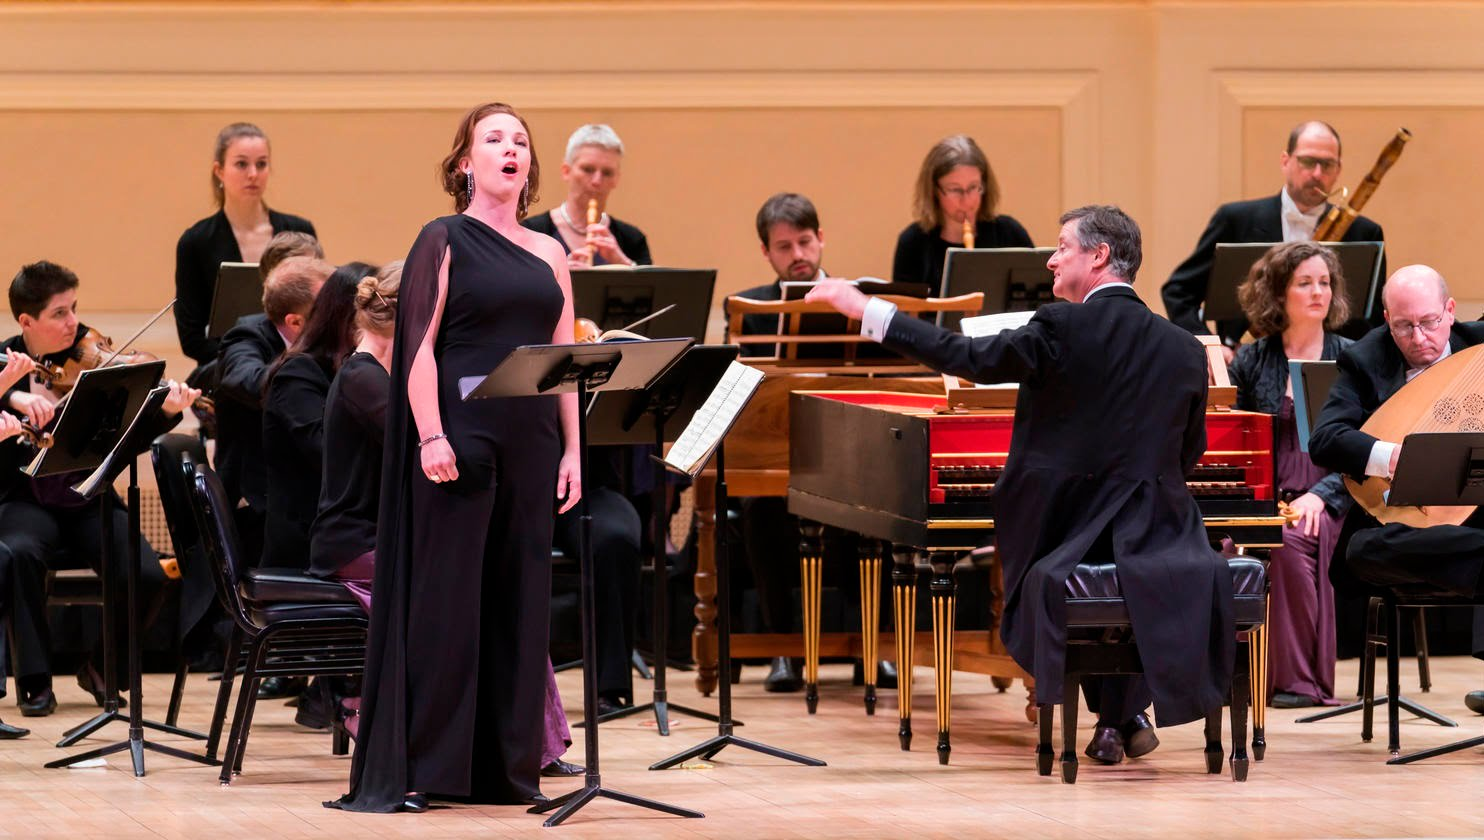 Handel's Rinaldo at Carnegie Hall – Harry Bicket directs The English Concert with Iestyn Davies, Joélle Harvey, Jane Archibald & Sasha CookePhotograph: Chris Lee